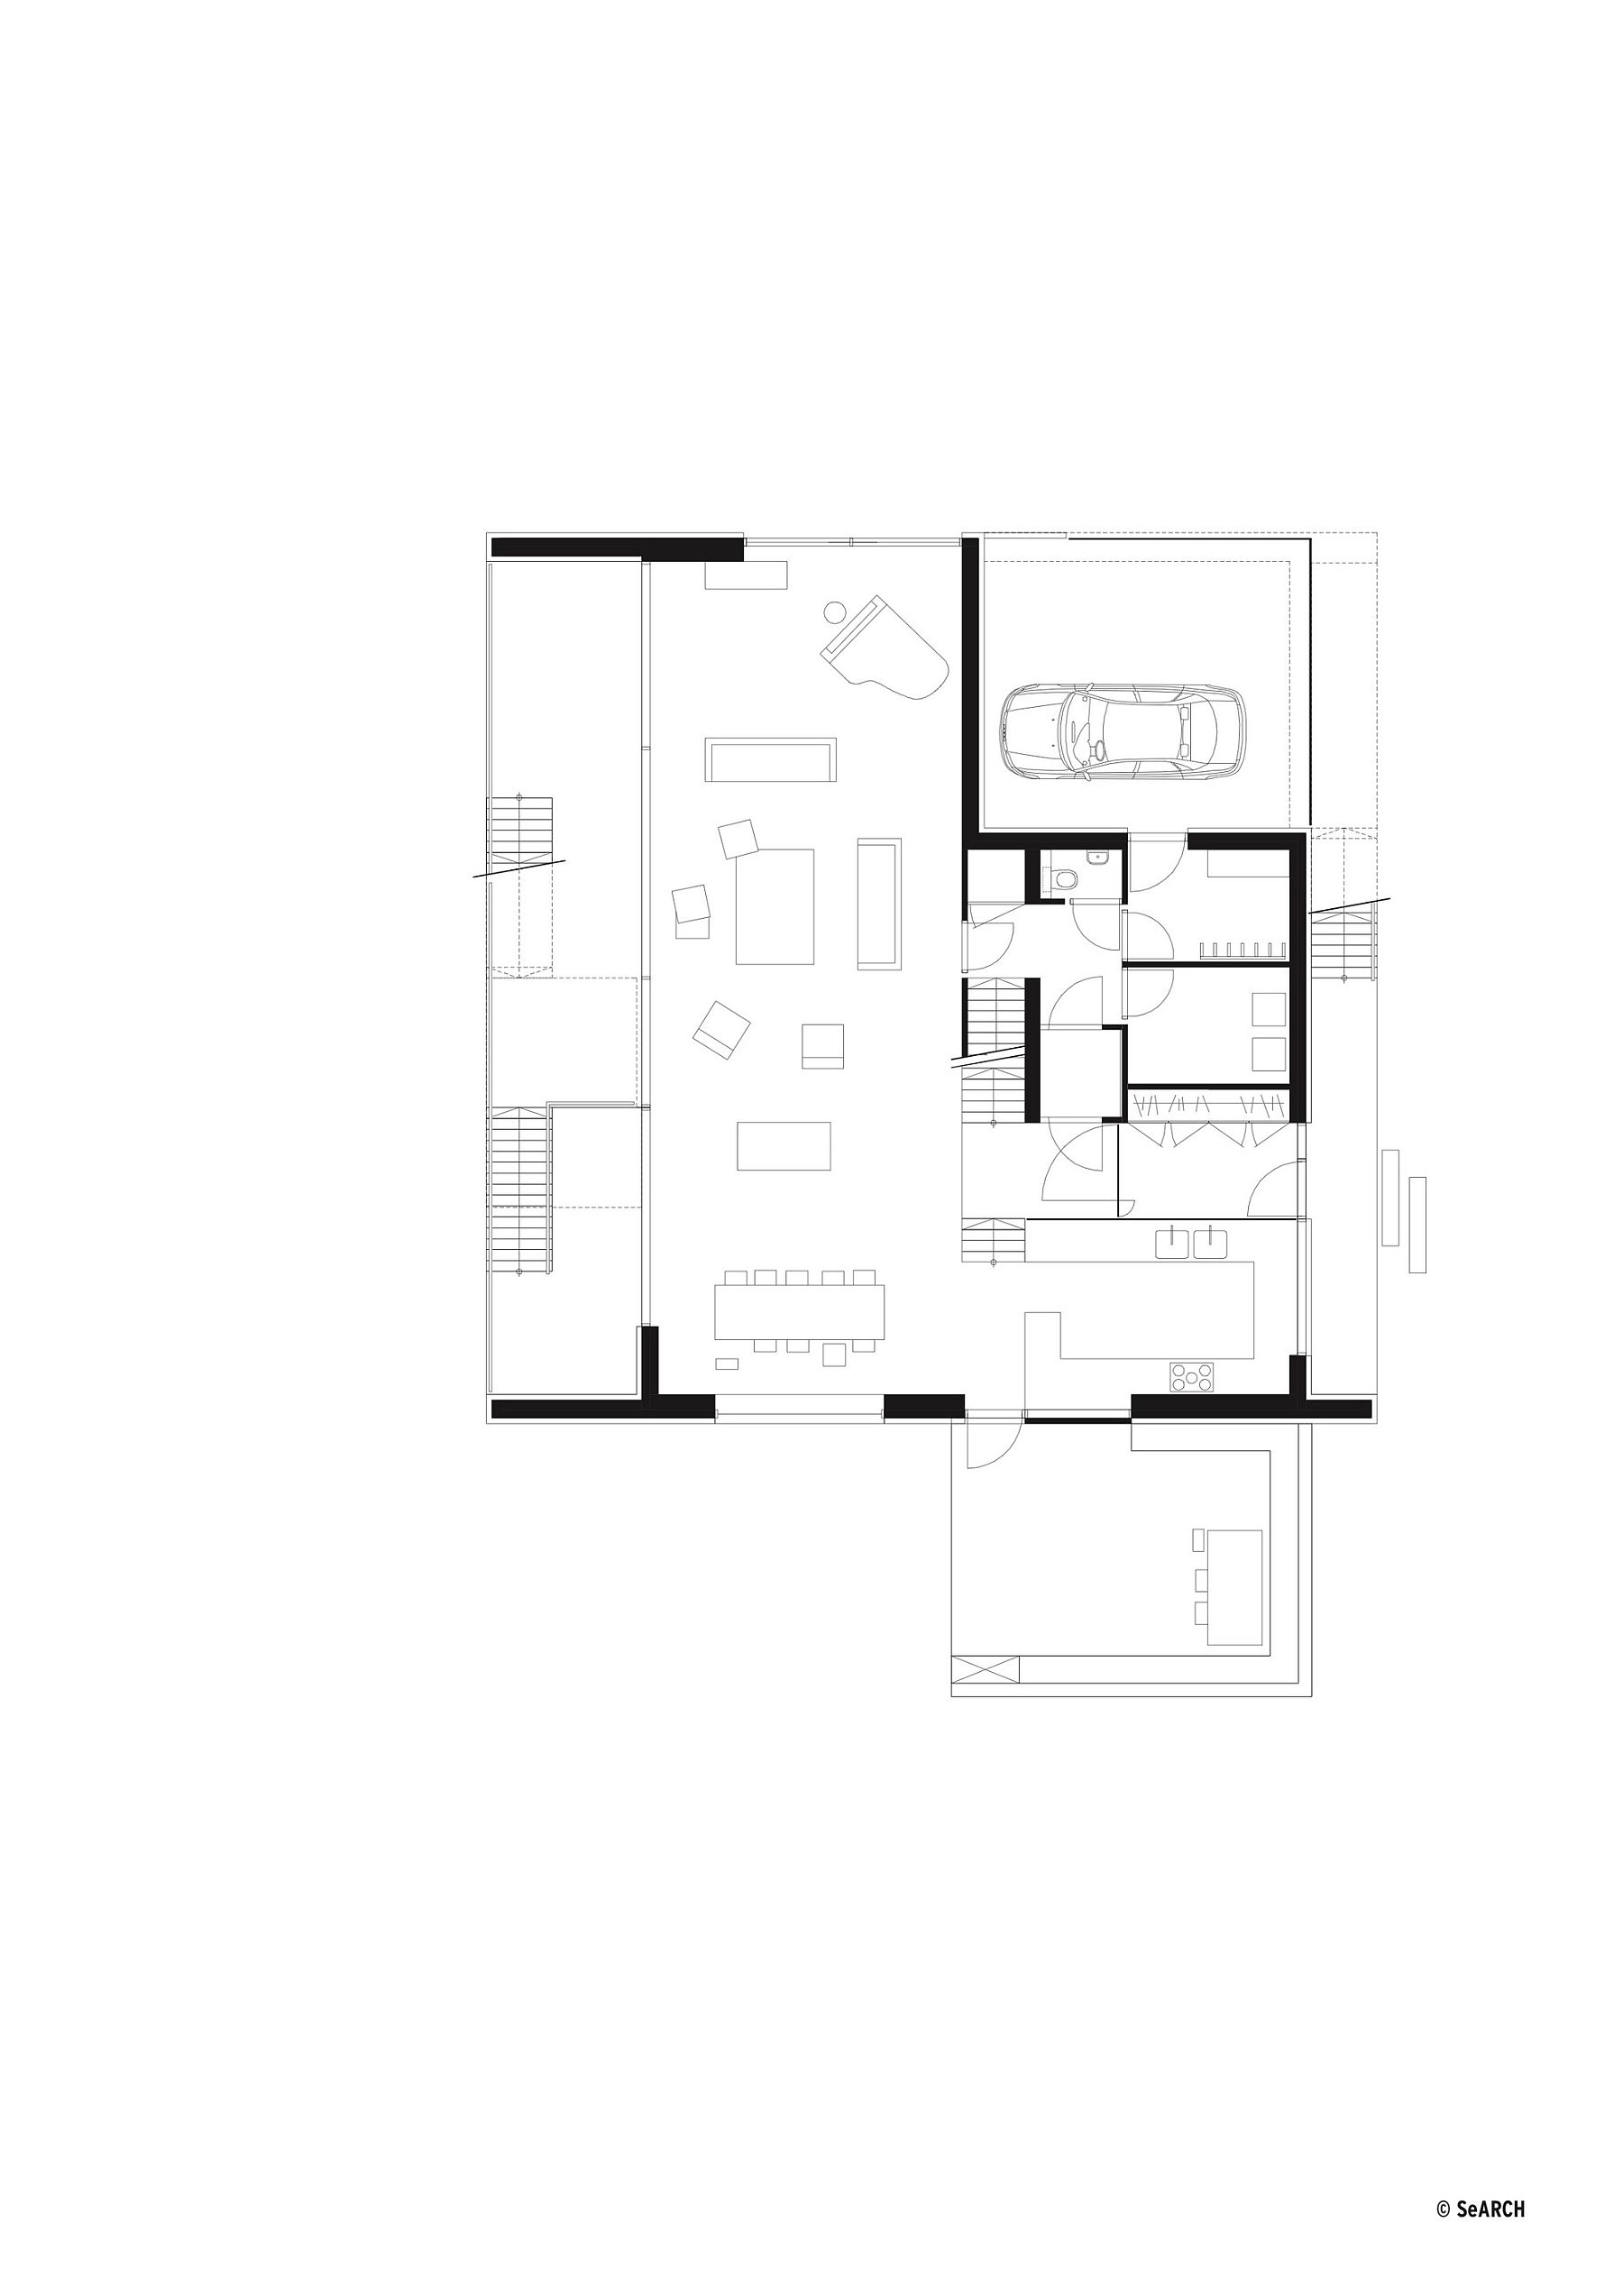 Floor plan of living area and parking zone